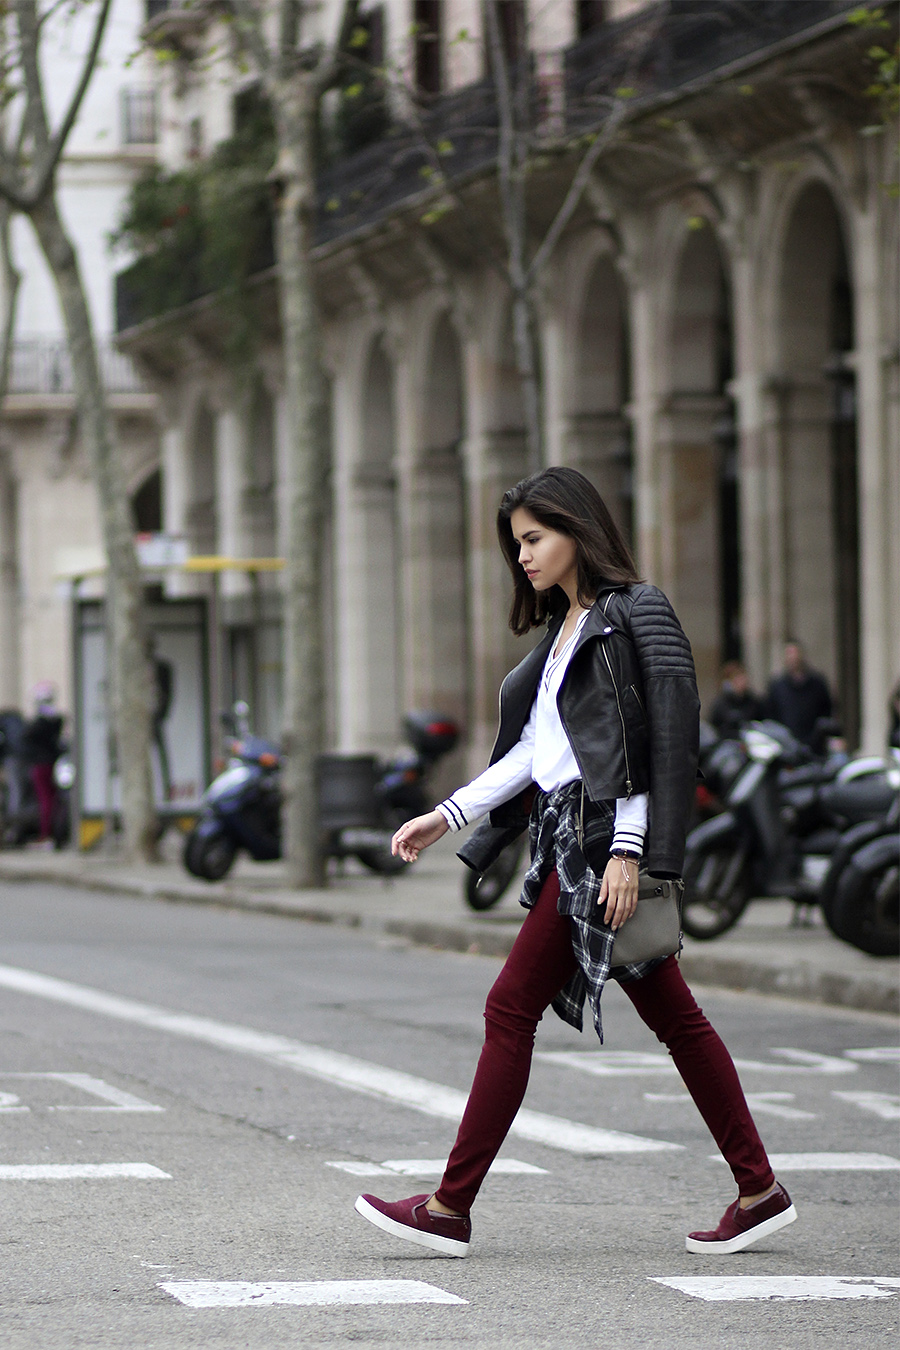 Burgundy Fashion Trend: Adriana Gastélum is wearing burgundy jeans from Zara and the matching slip-ons are from Bata